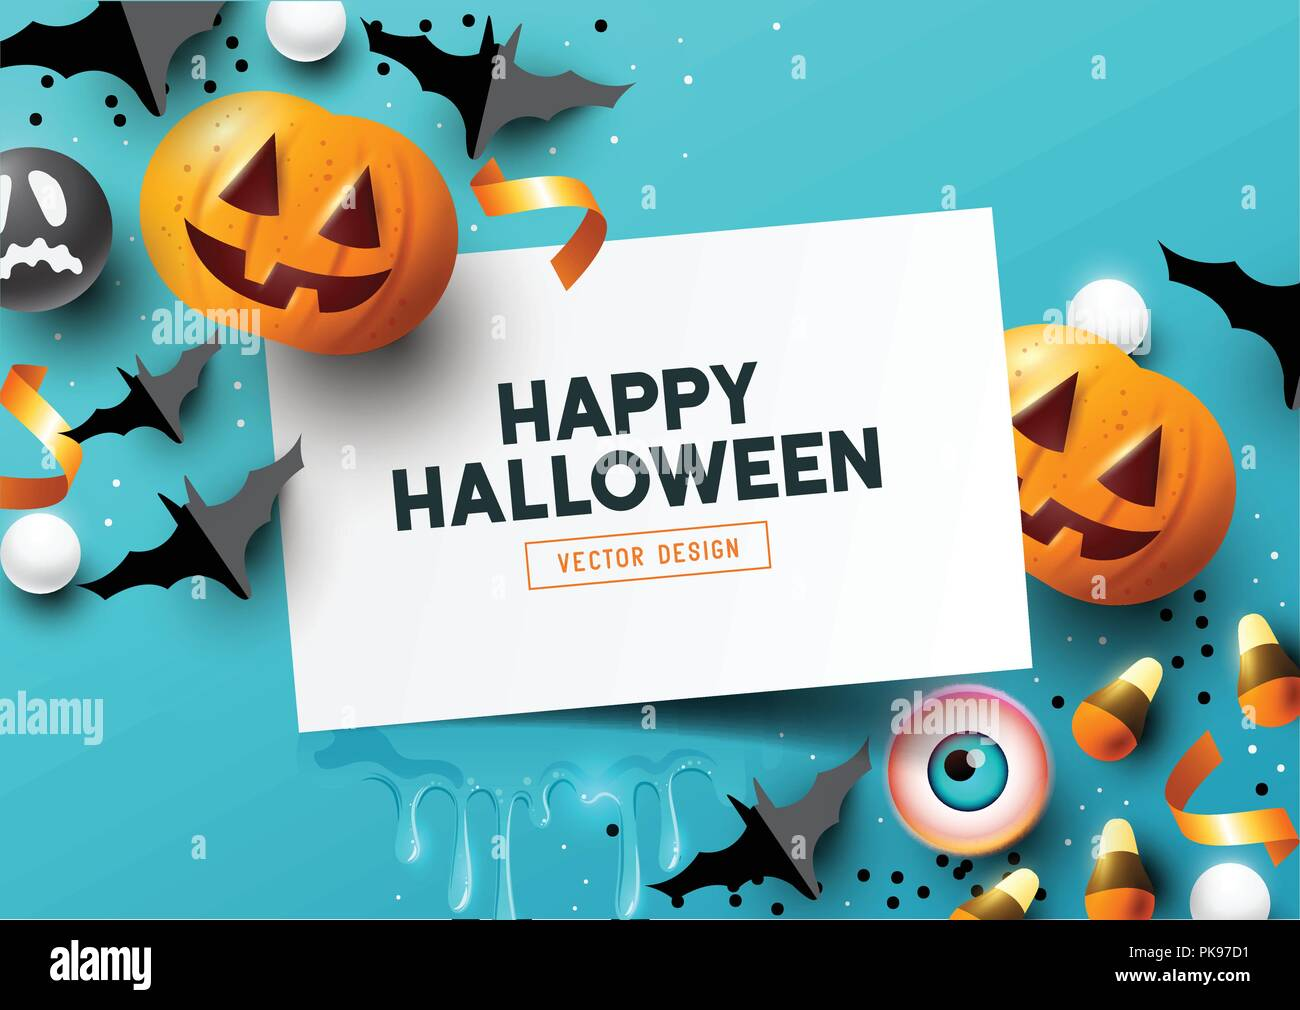 Halloween  party Composition with pumpkins, party decorations and sweets on a blue background. Top view vector illustration. - Stock Vector